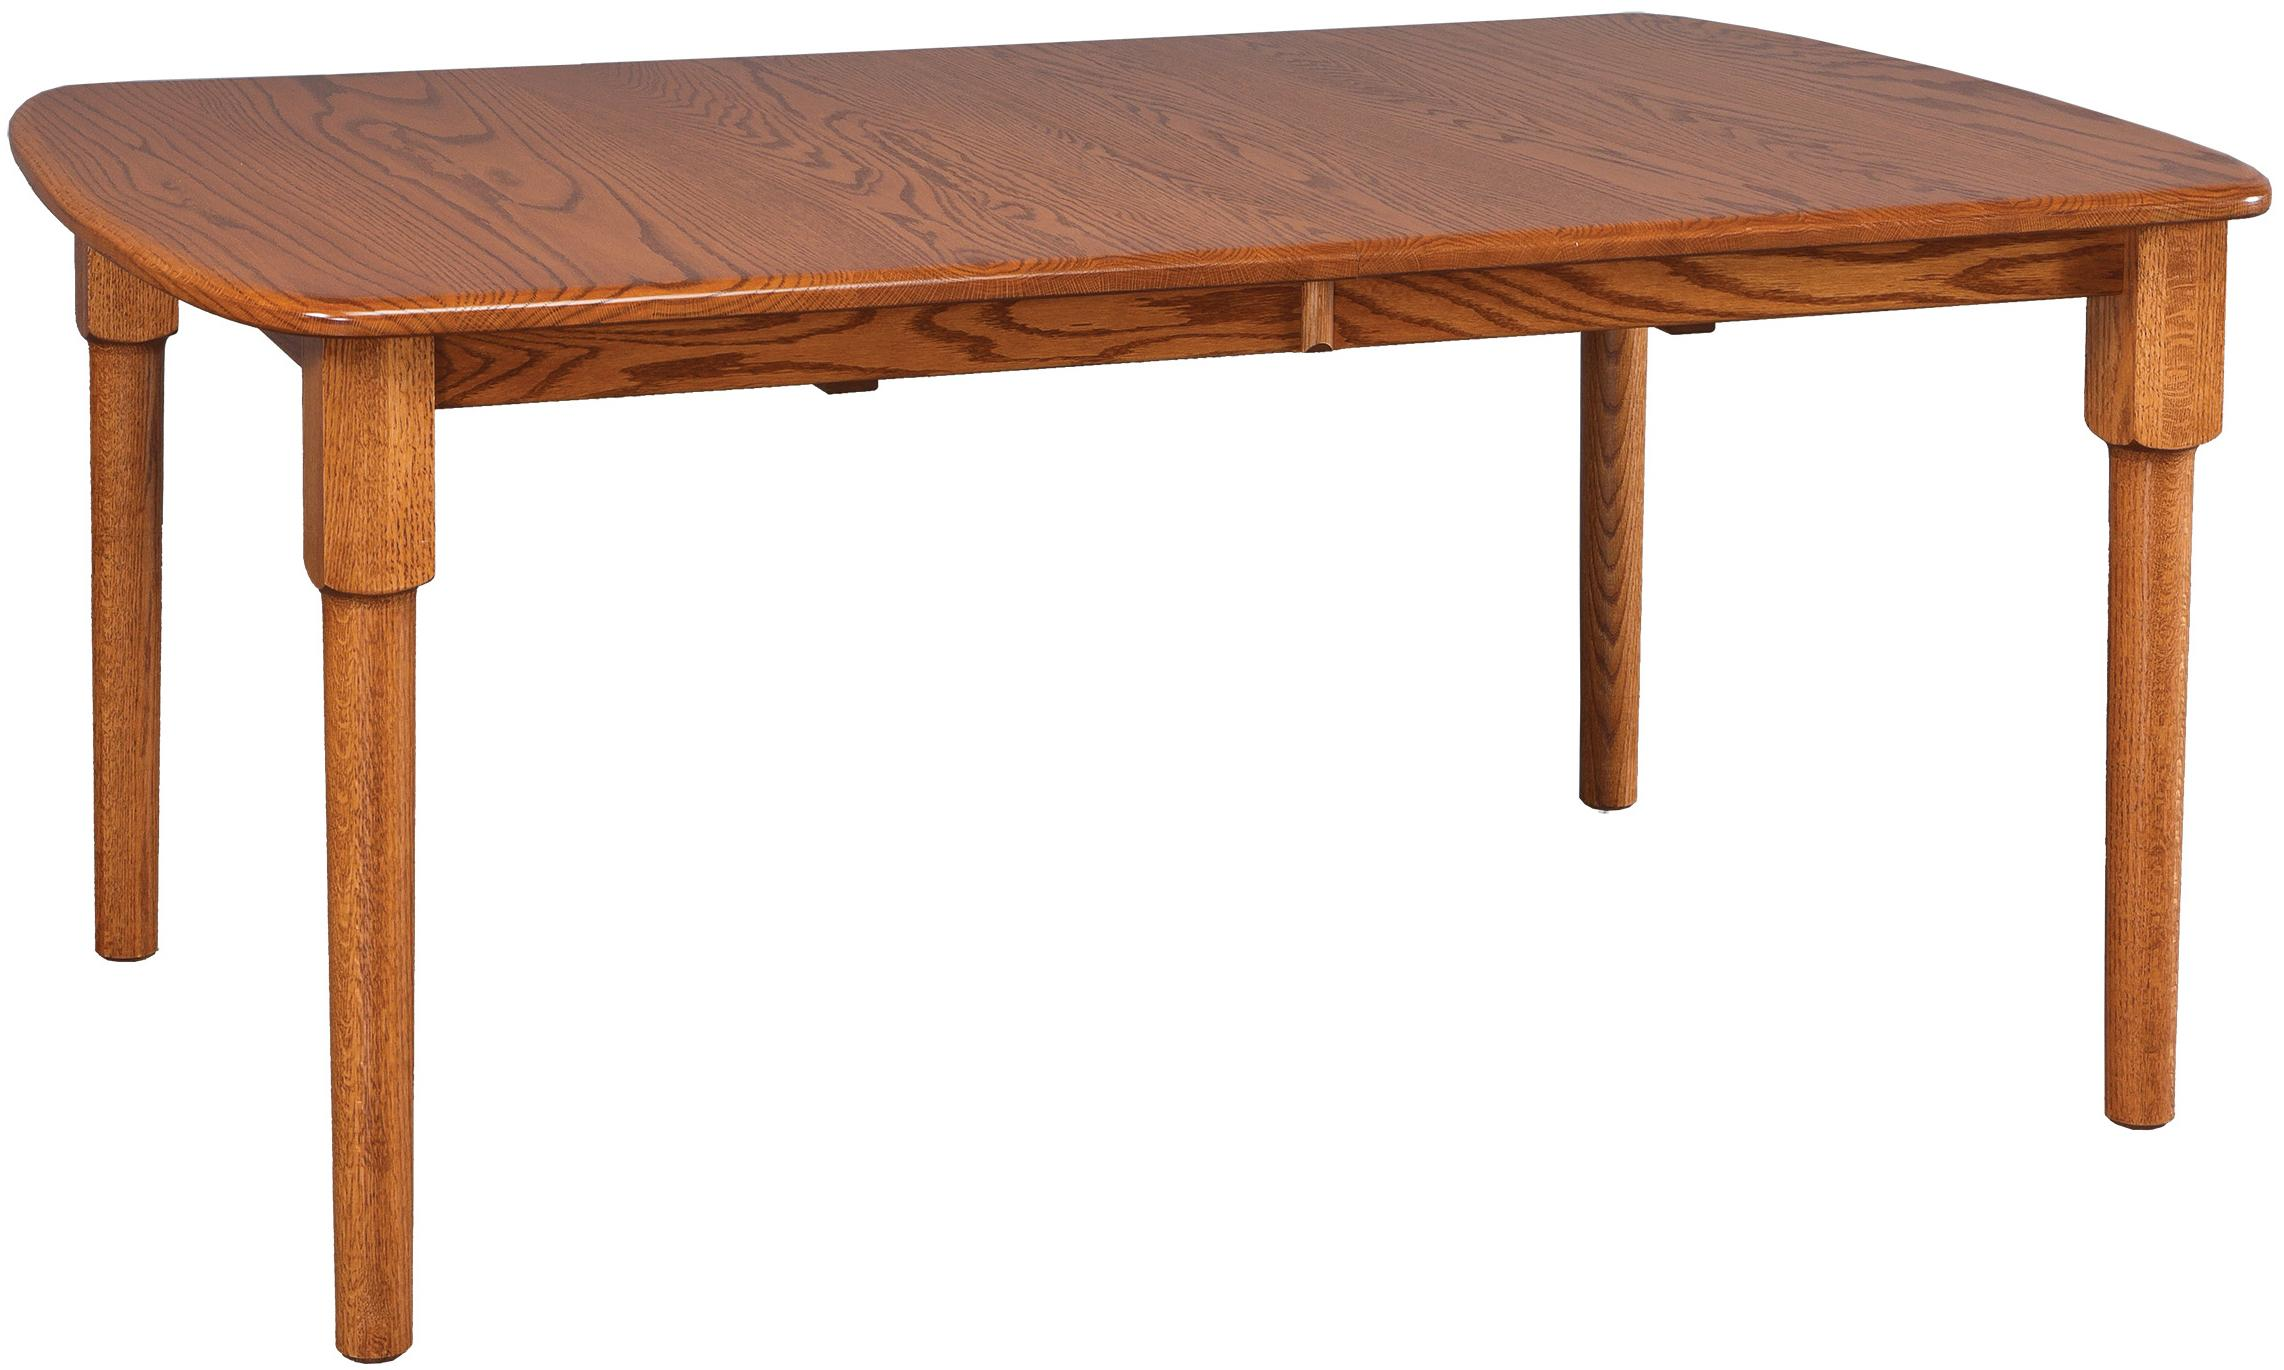 Daniel 39 s amish tables solid wood rectangular table john for John v schultz dining room table